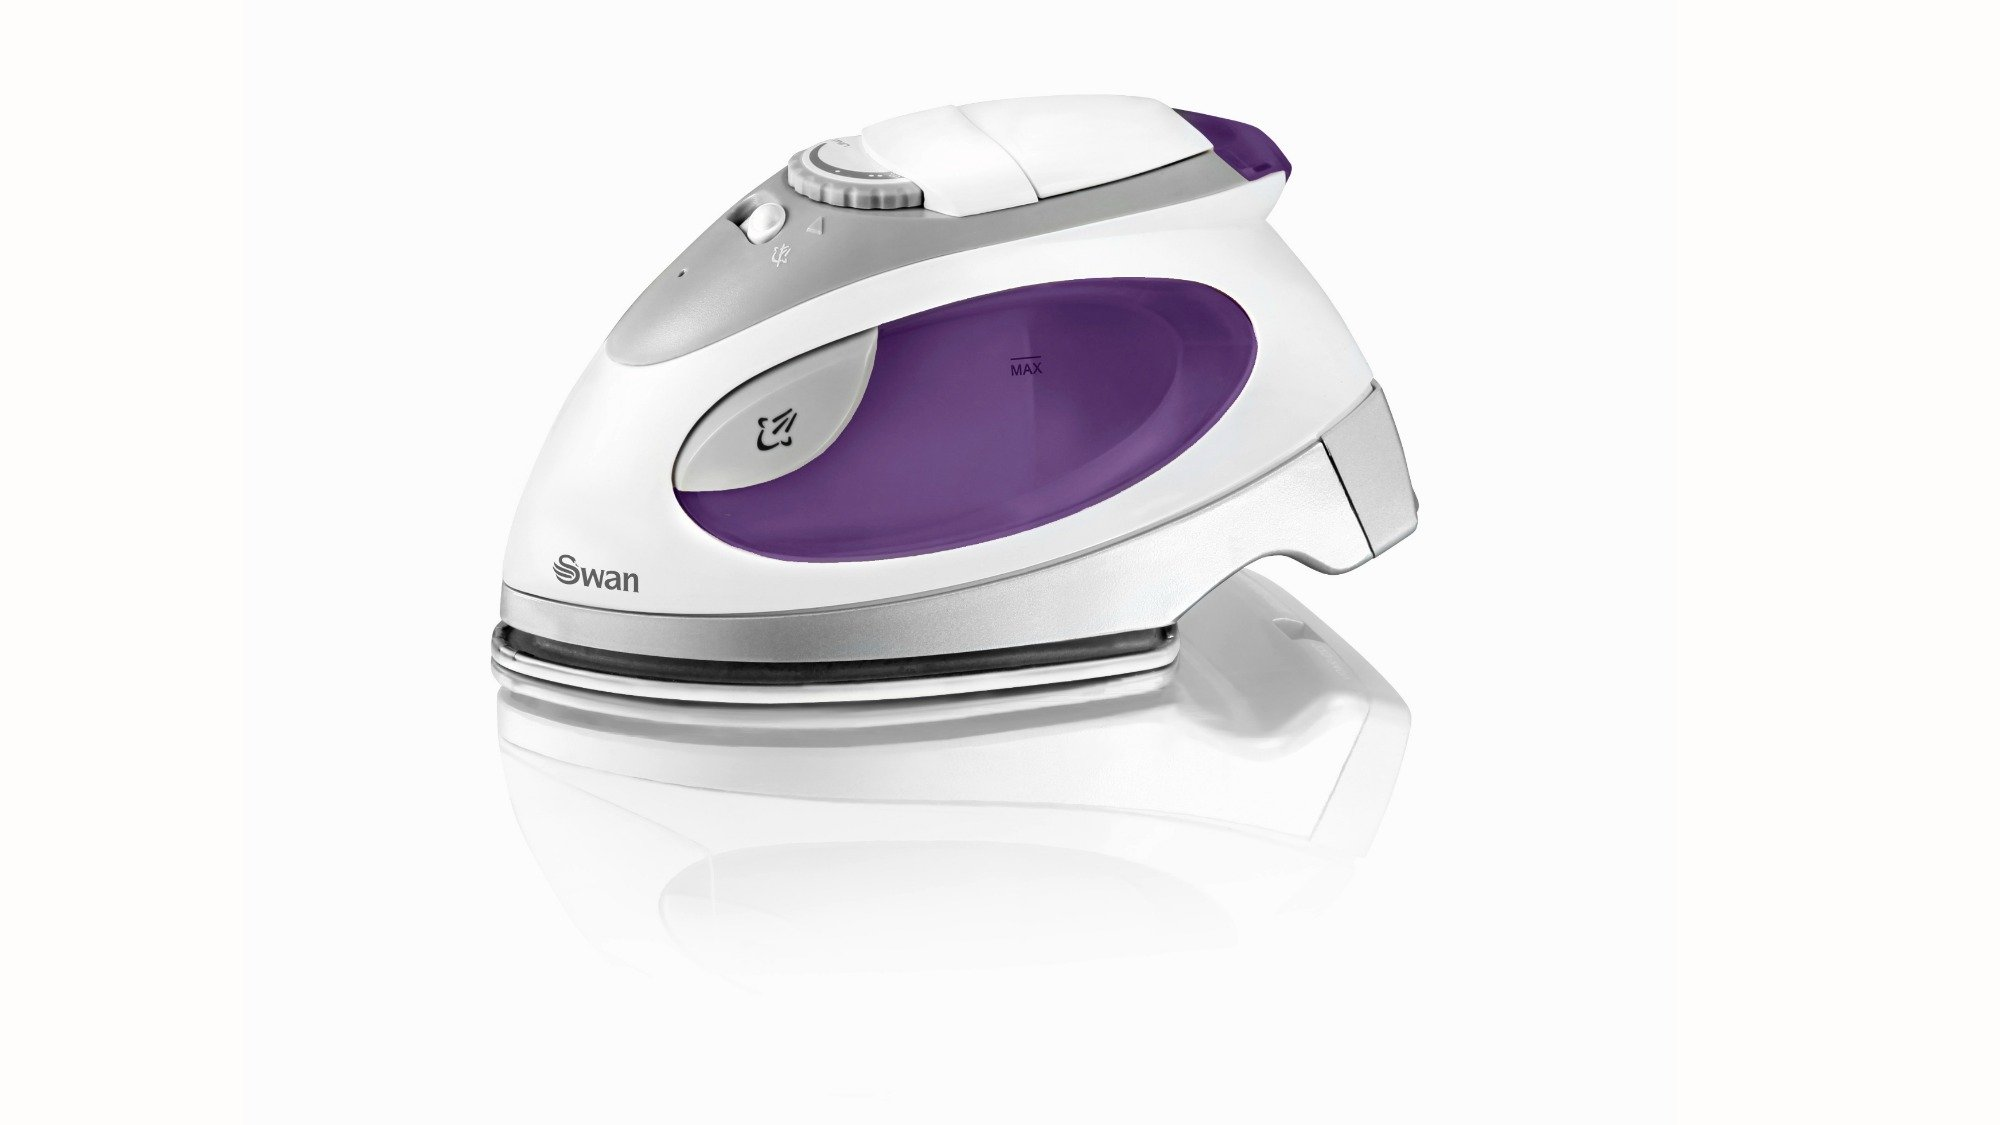 Best Steam Iron The Best Steam Irons To Buy From 15 Expert Reviews